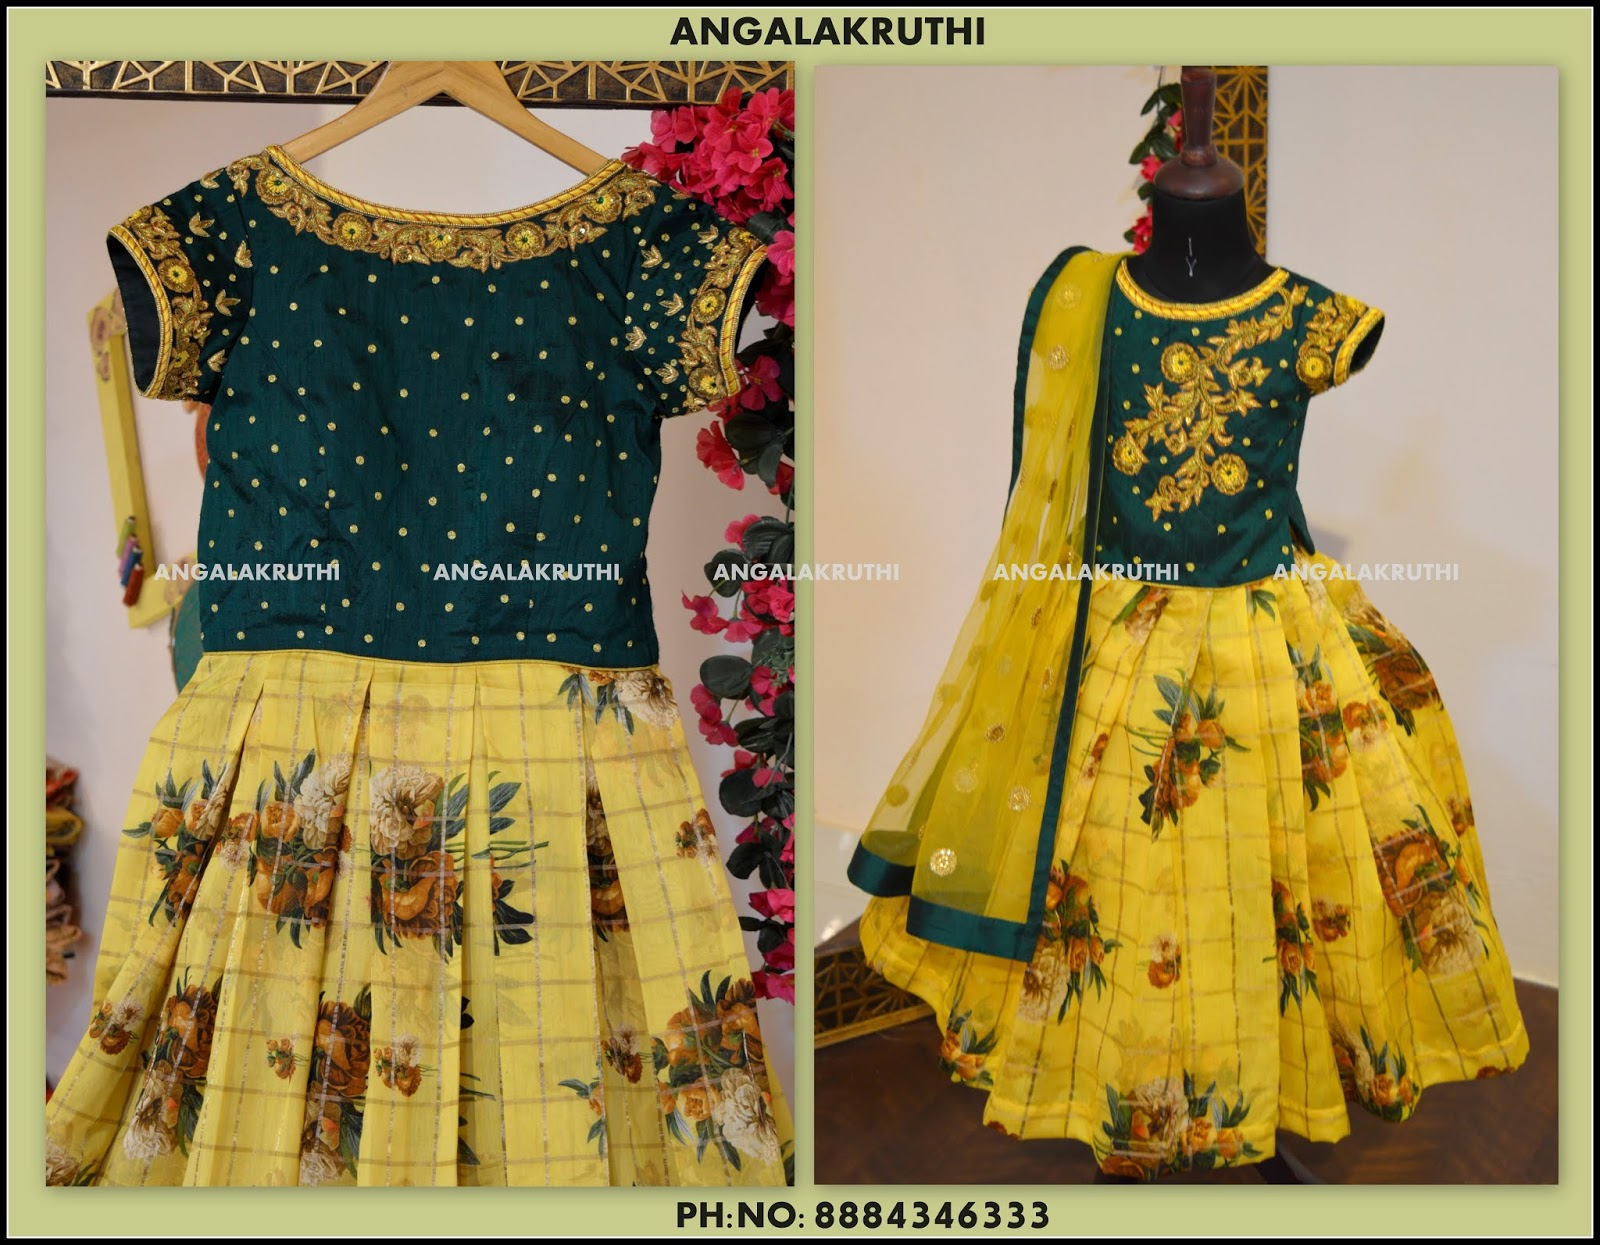 Angalakruthi Boutique Ladies And Kids Designer Boutique In Bangalore Ladies And Kids Designer Boutique With Online Order Placement Service